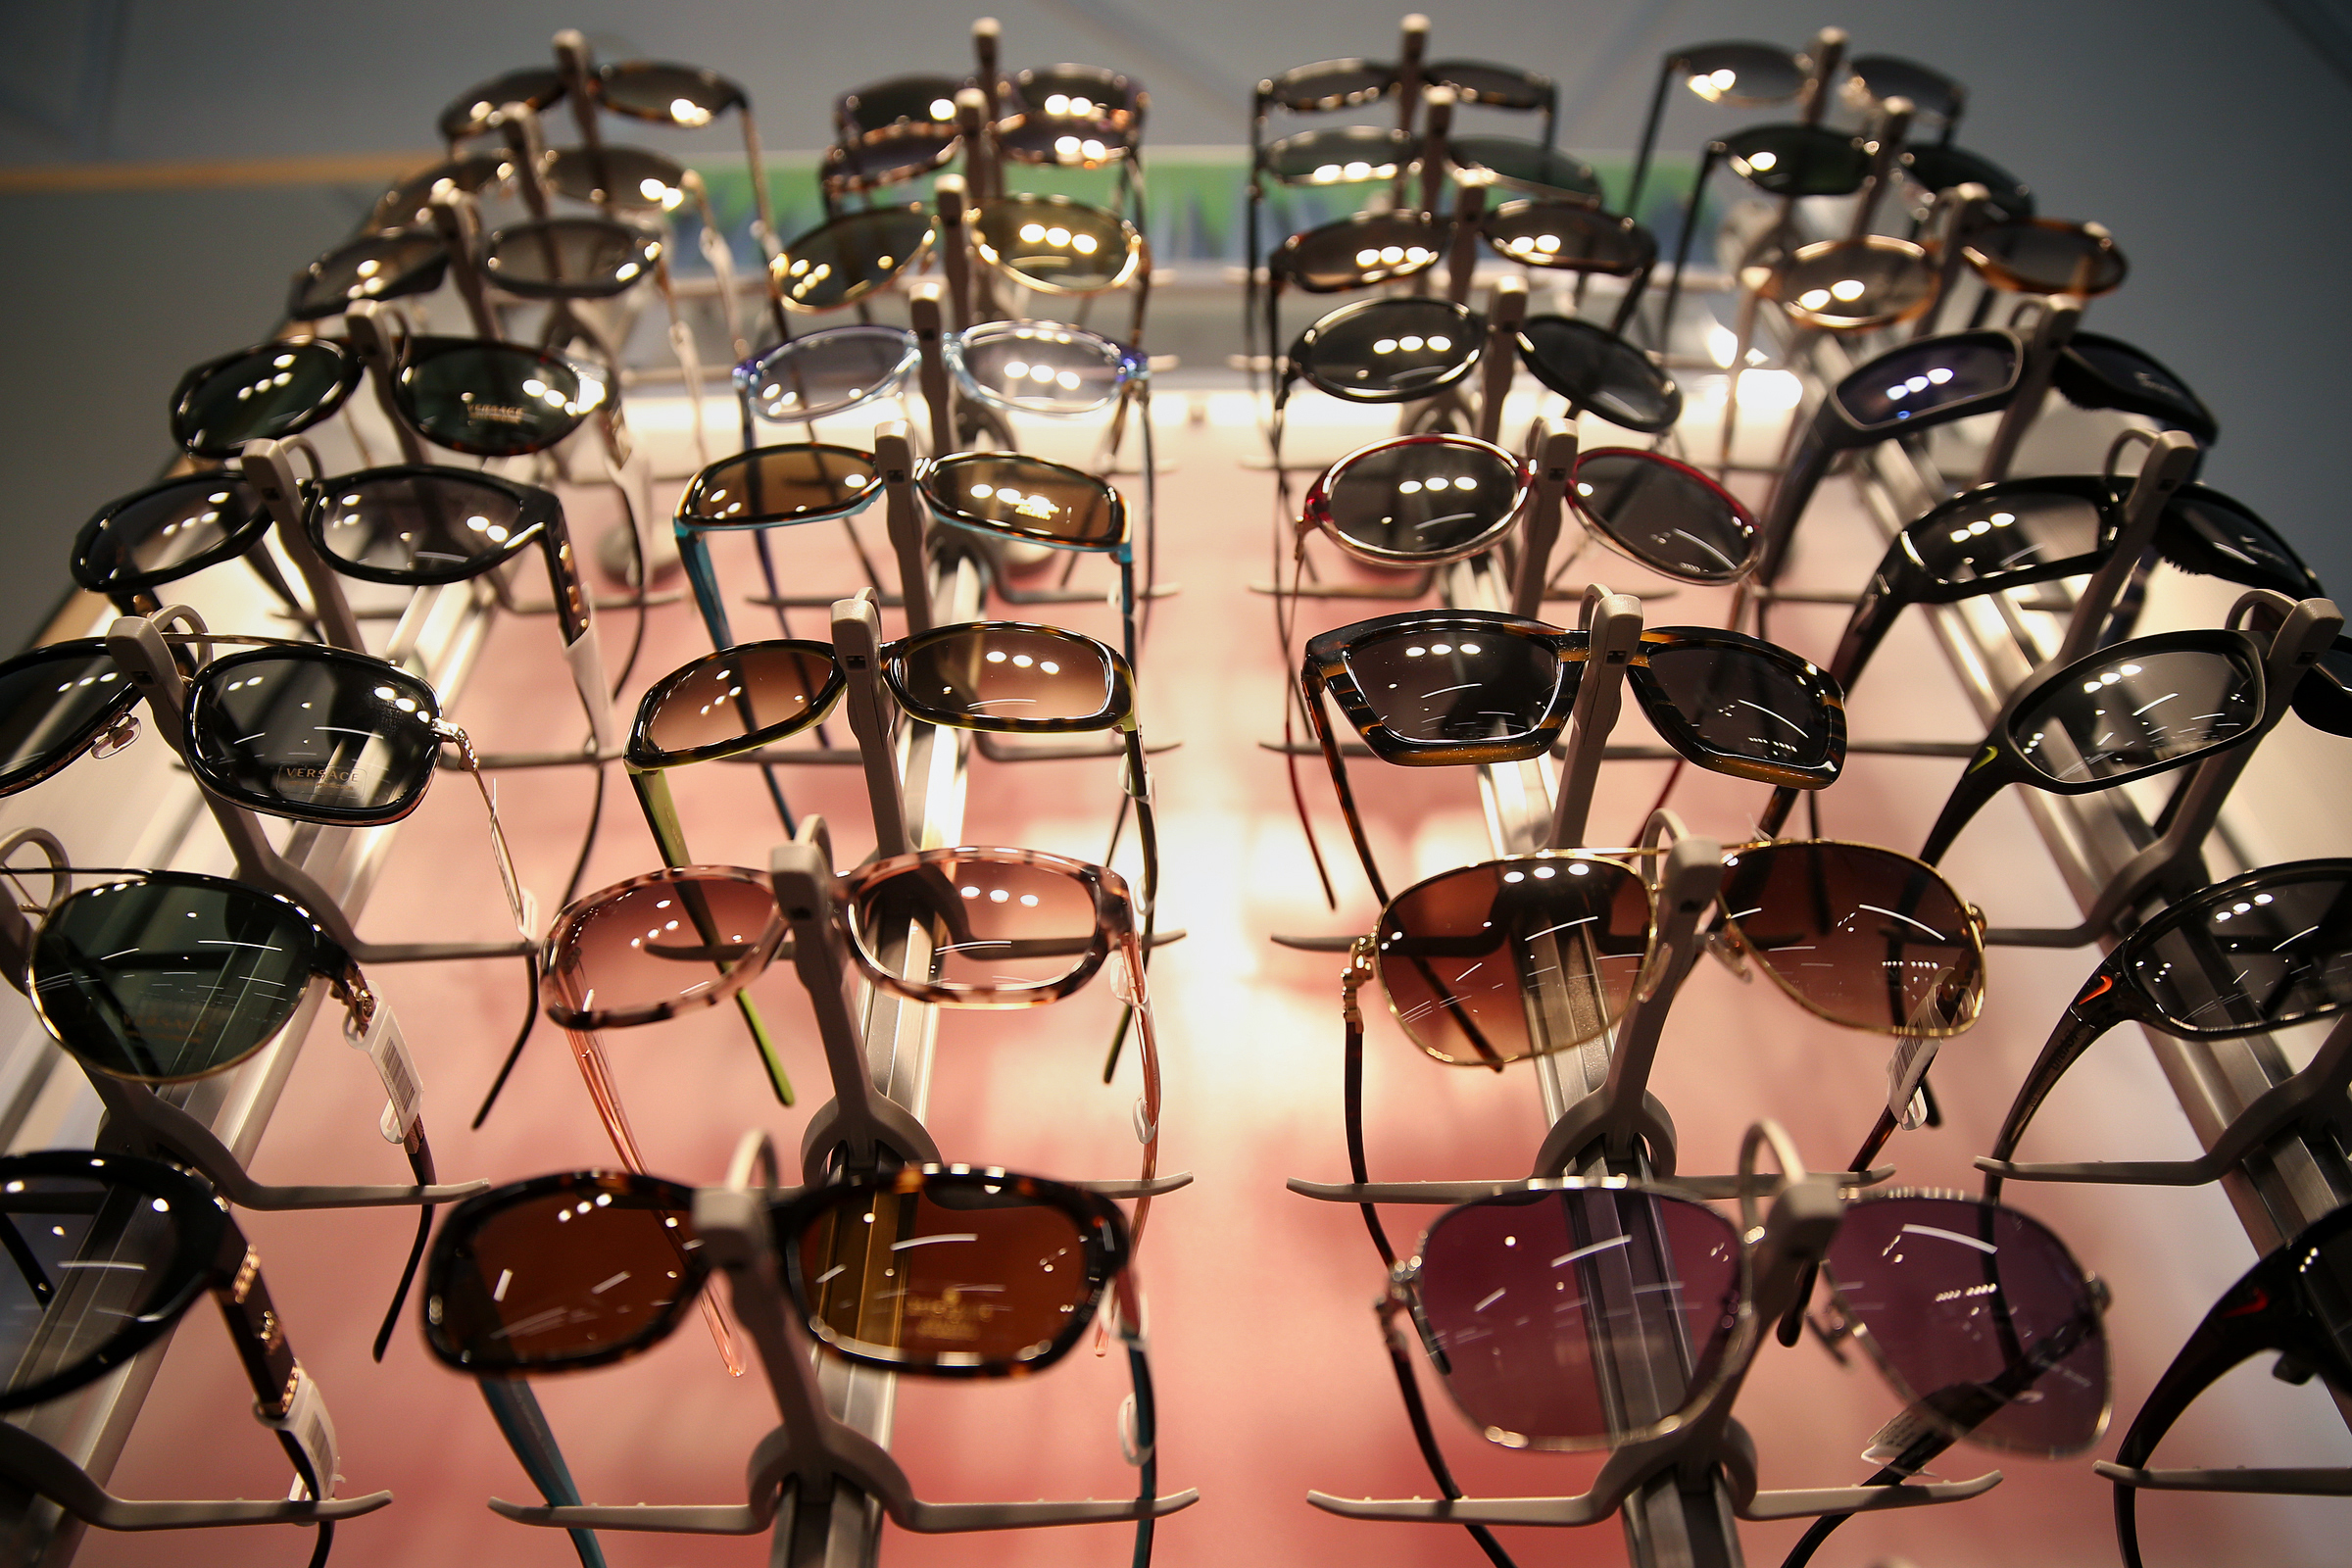 Sunglass frames are on display in the new Wills Eyewear store at Eighth and Arch streets in Center City. The store, which offers optometry appointments and sells glasses, will be joined by another location in Fashion District Philadelphia when it opens next fall.